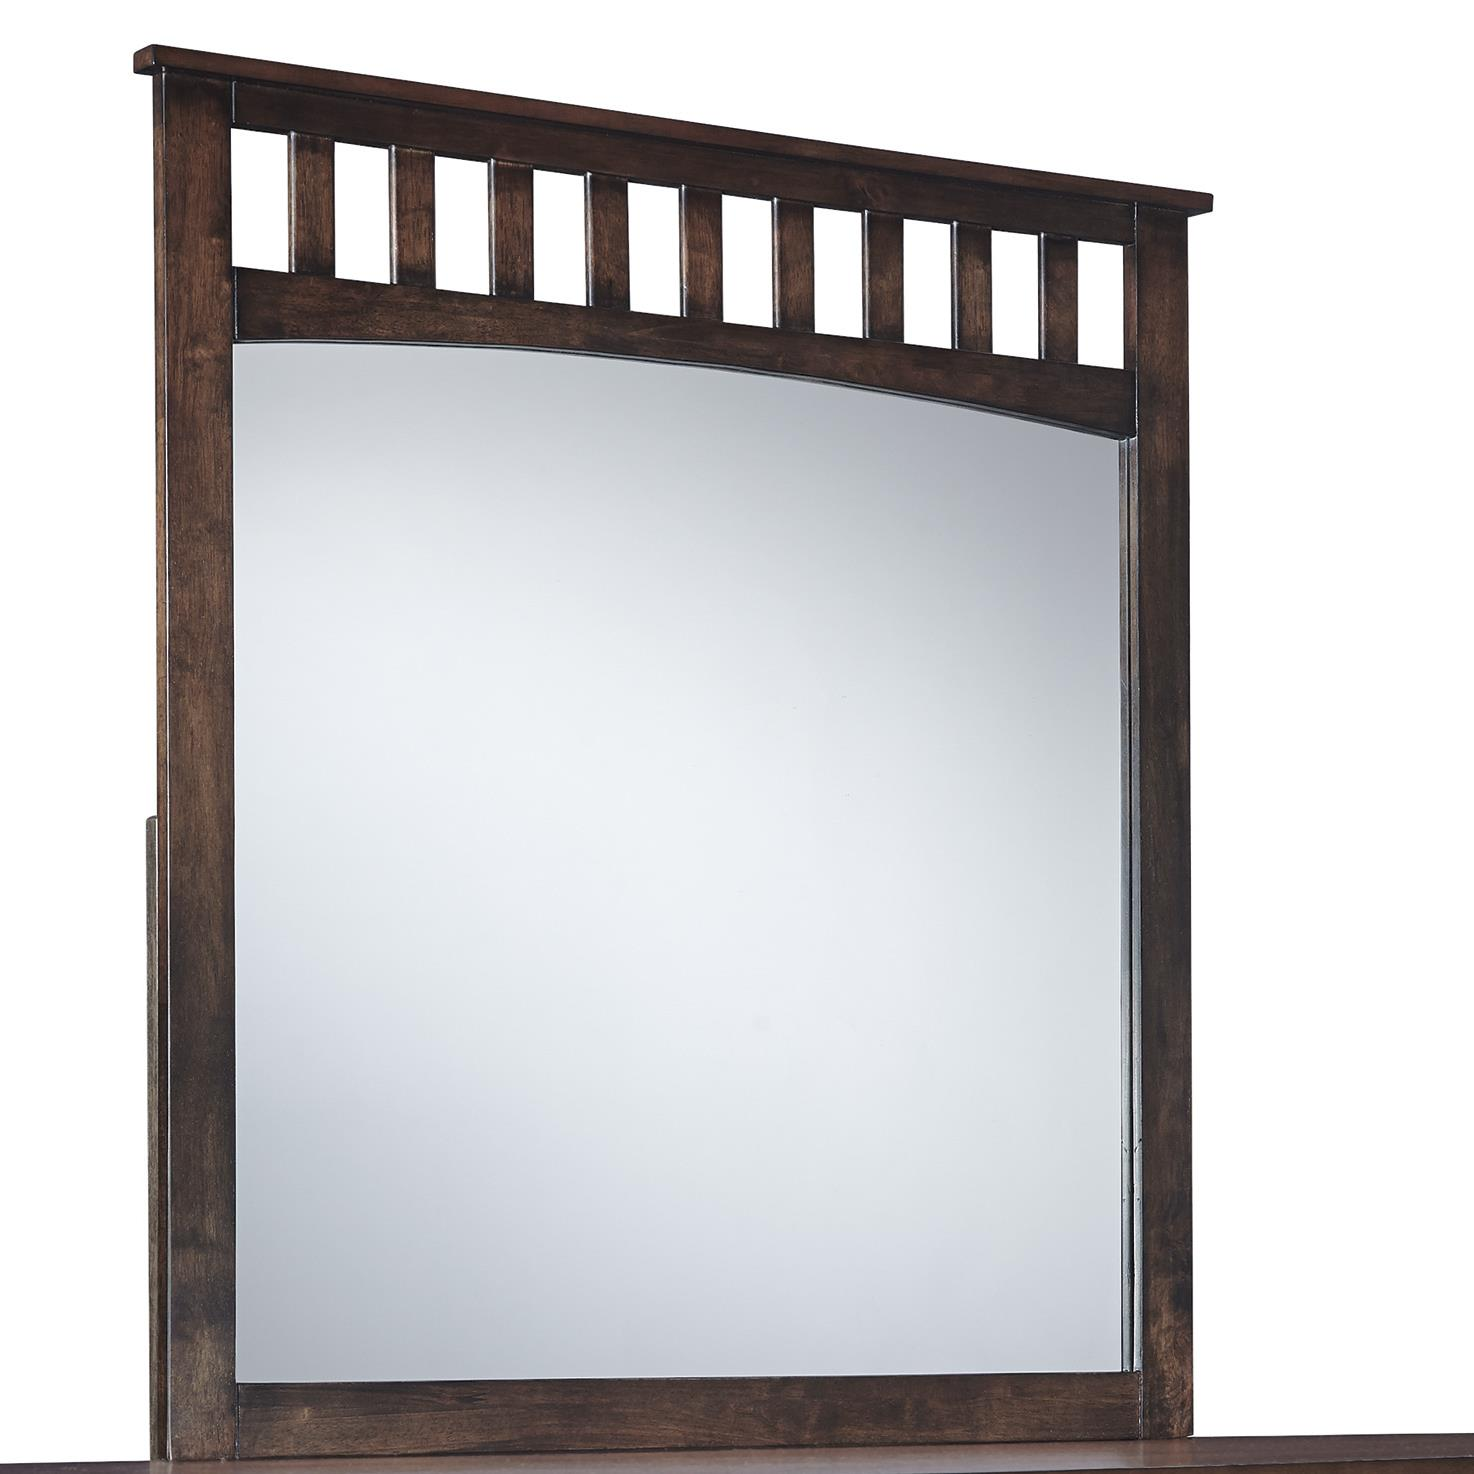 Signature Design by Ashley Strenton Bedroom Mirror - Item Number: B568-36